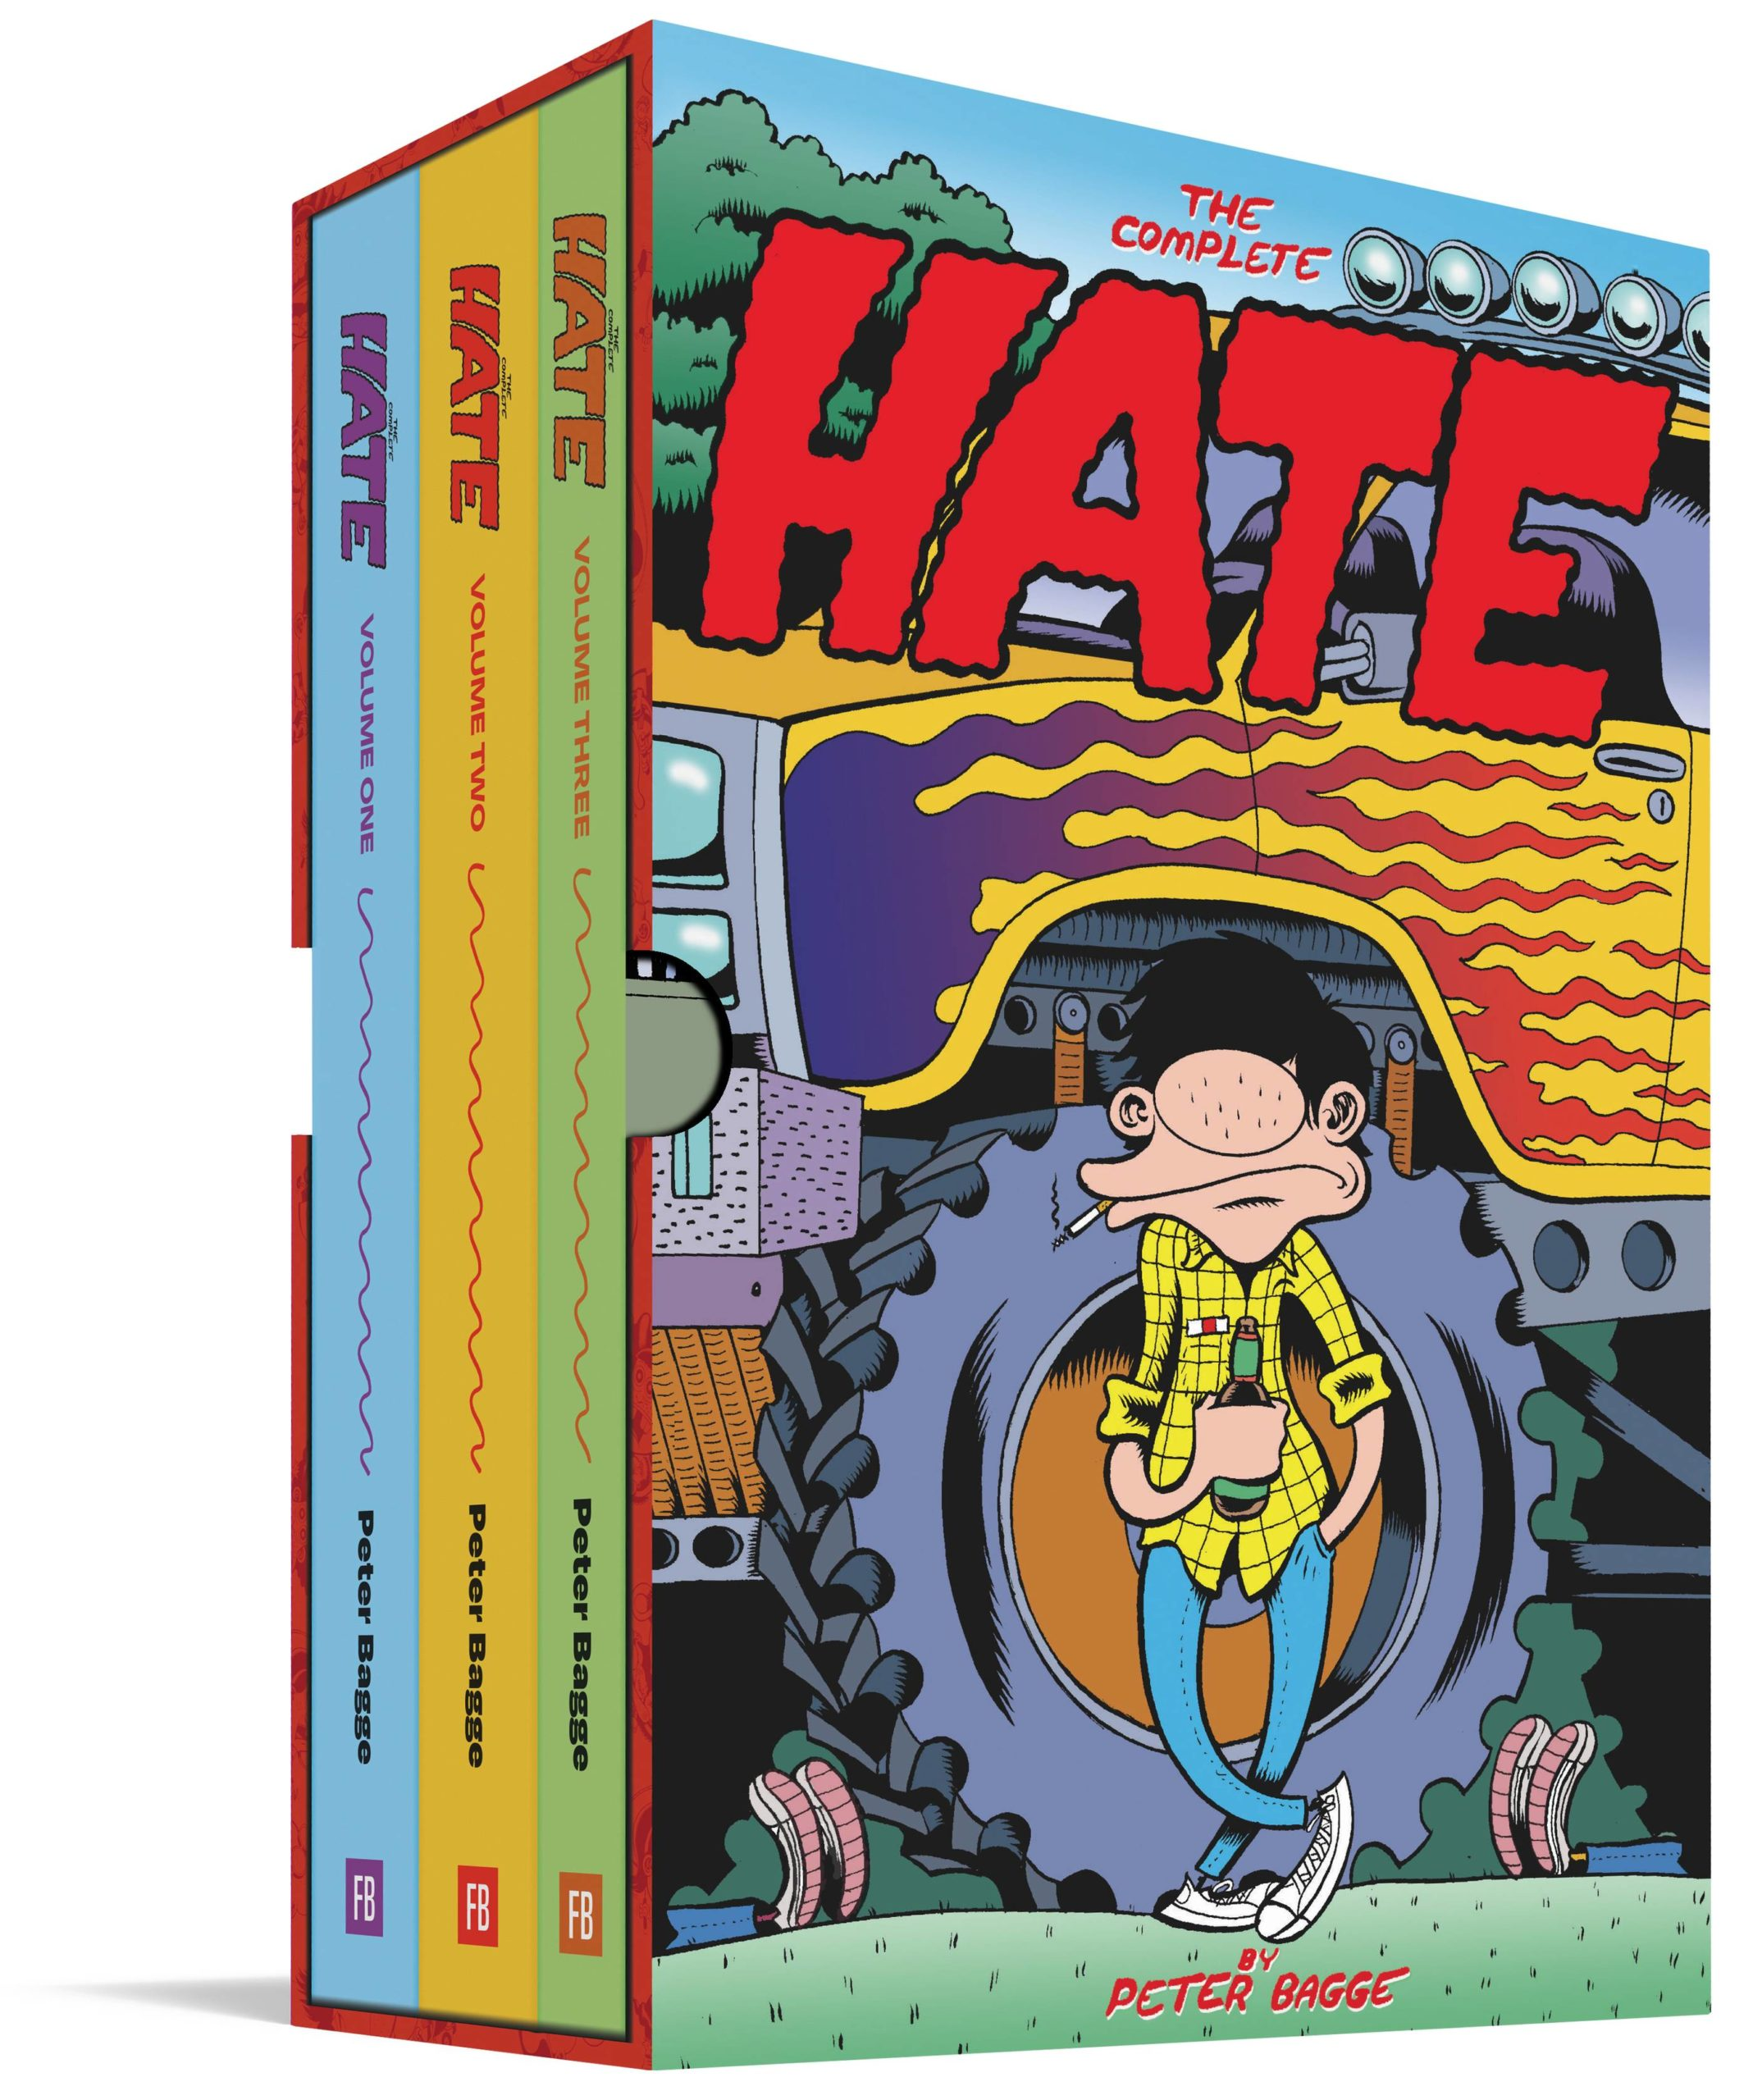 COMPLETE HATE HC PETER BAGGE